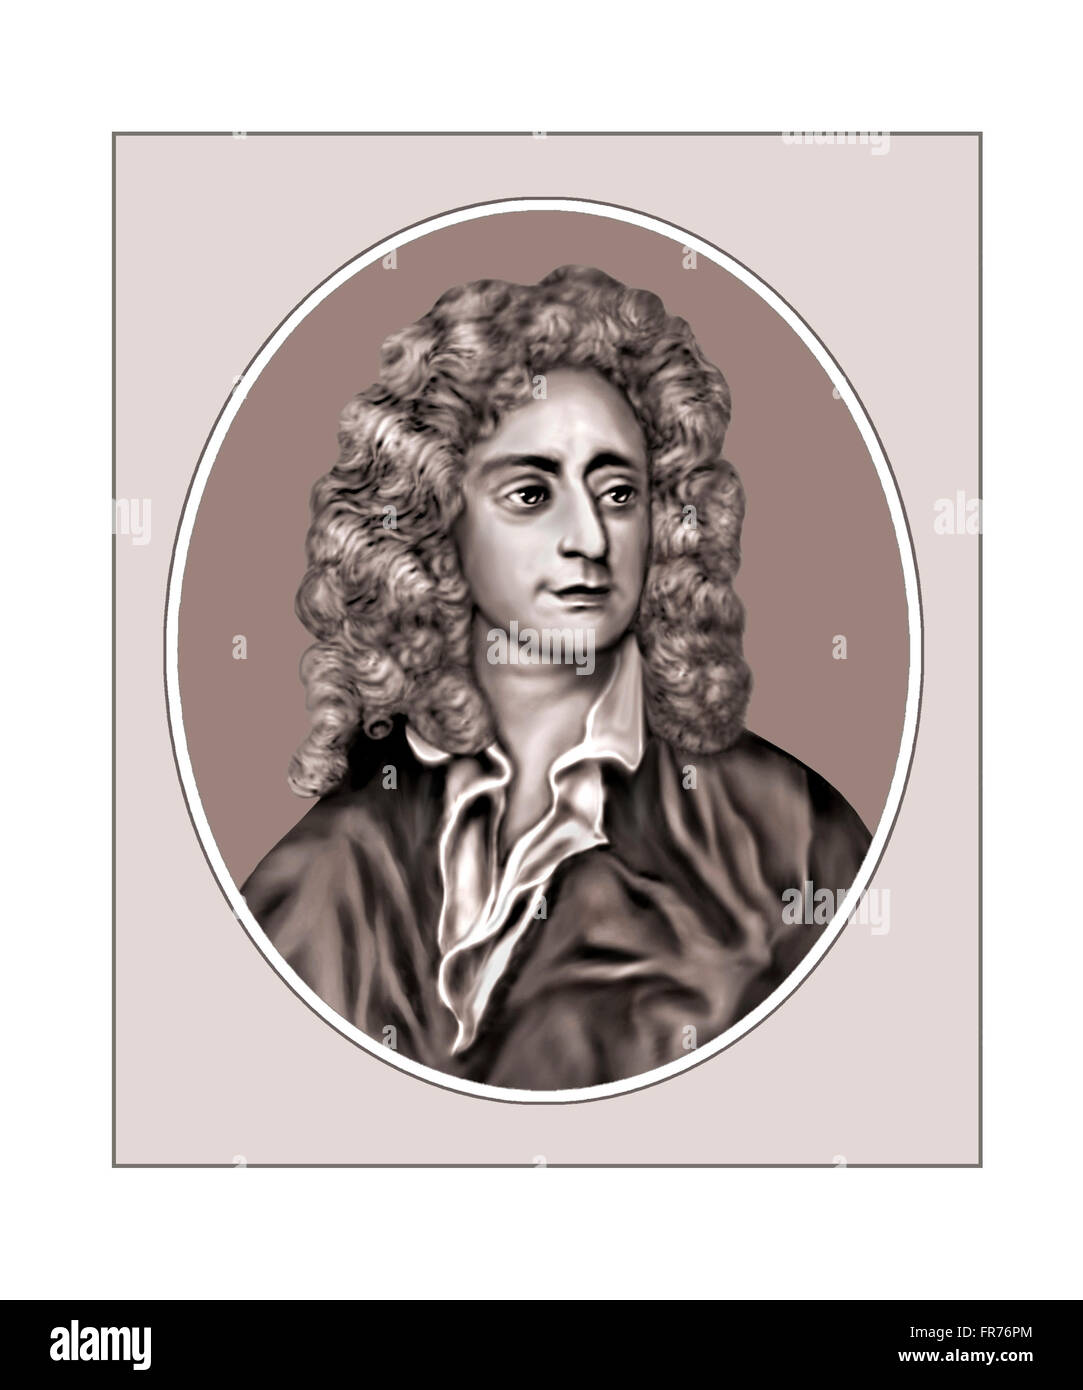 Henry Purcell, 1659-1695, Composer, Portrait - Stock Image